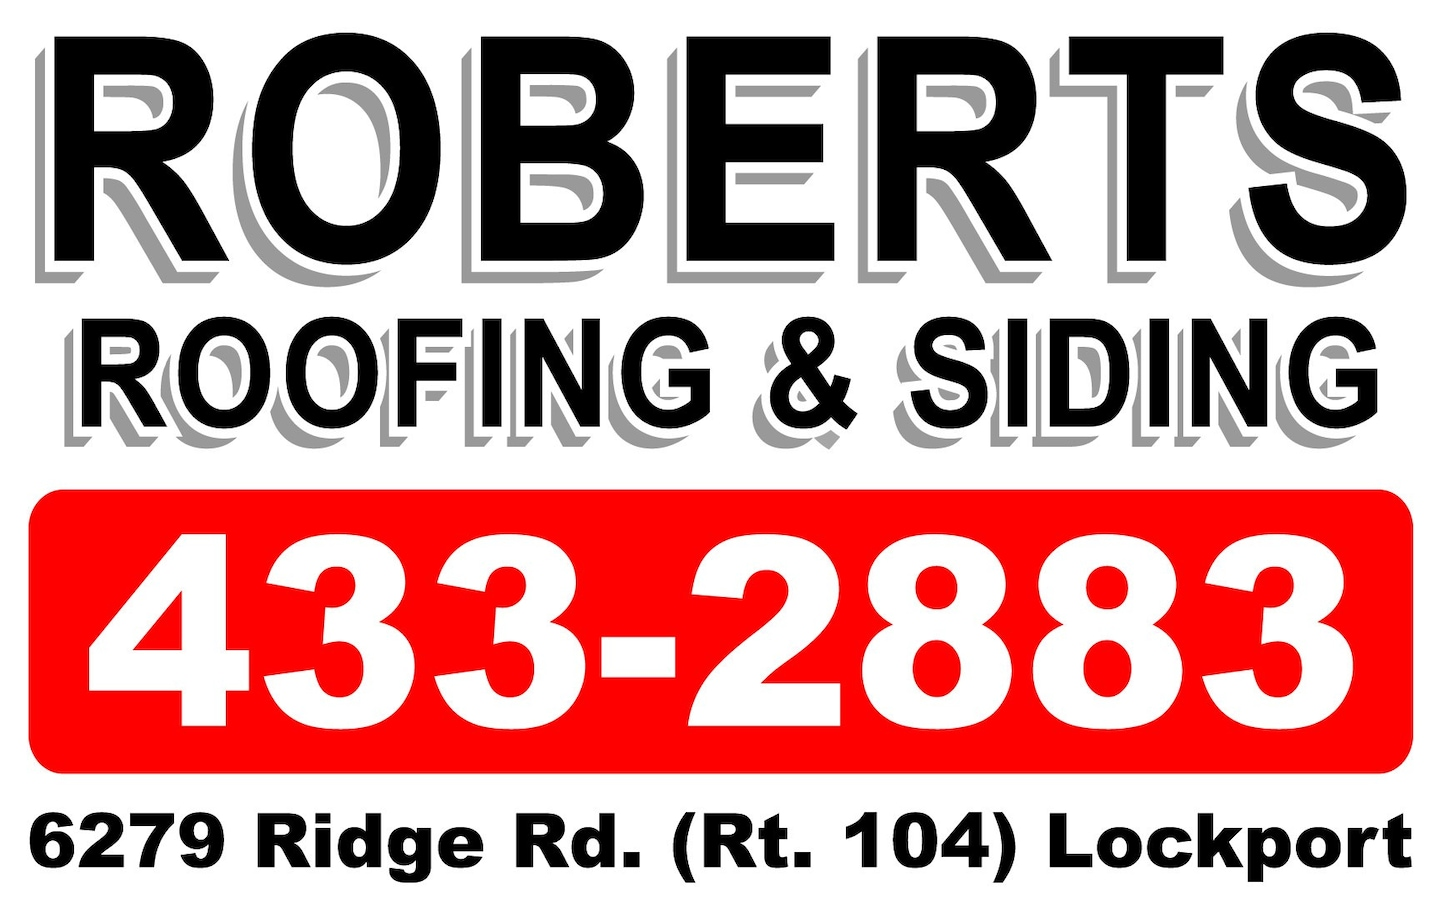 Roberts Roofing & Siding Co Inc